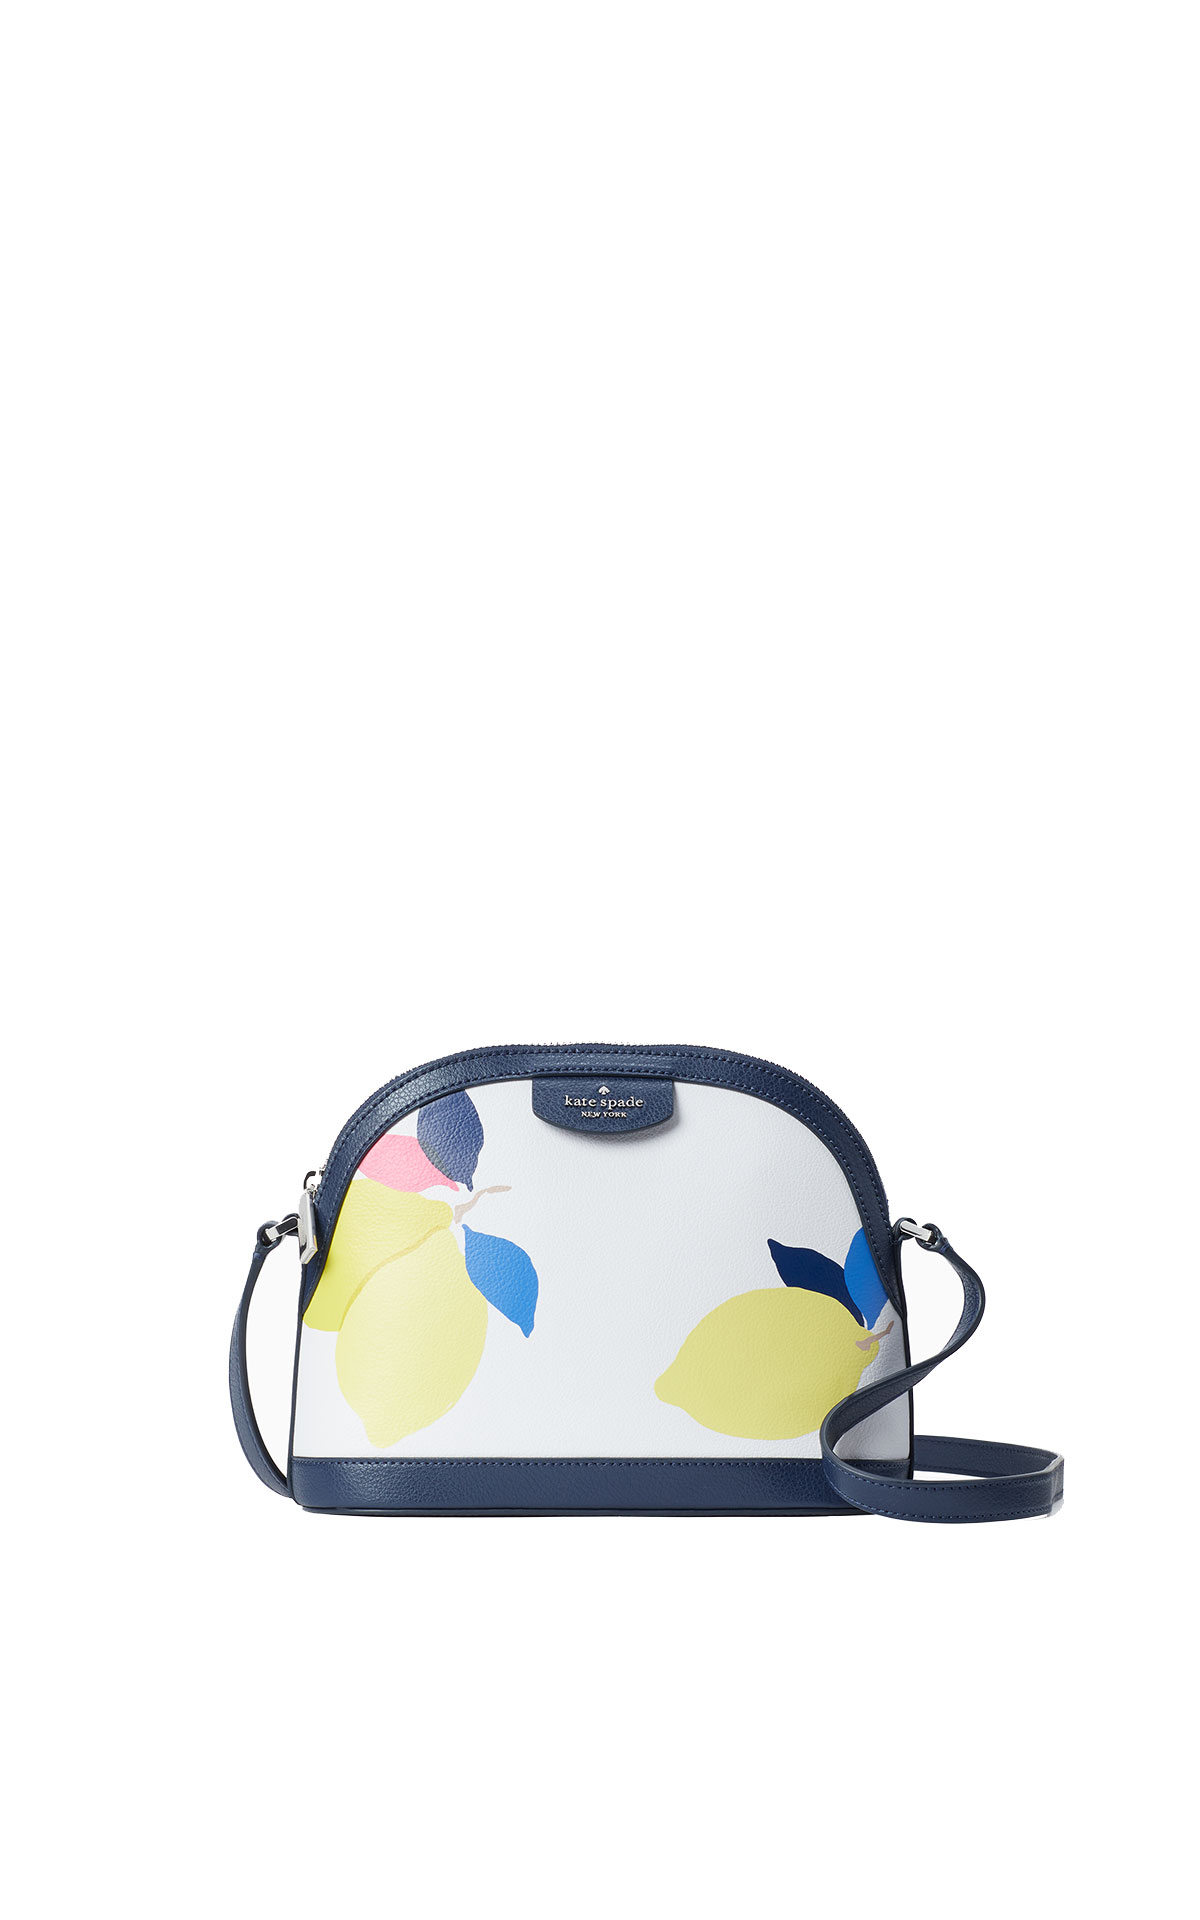 kate spade new york Sylvia lemon zest x-large dome crossbody from Bicester Village